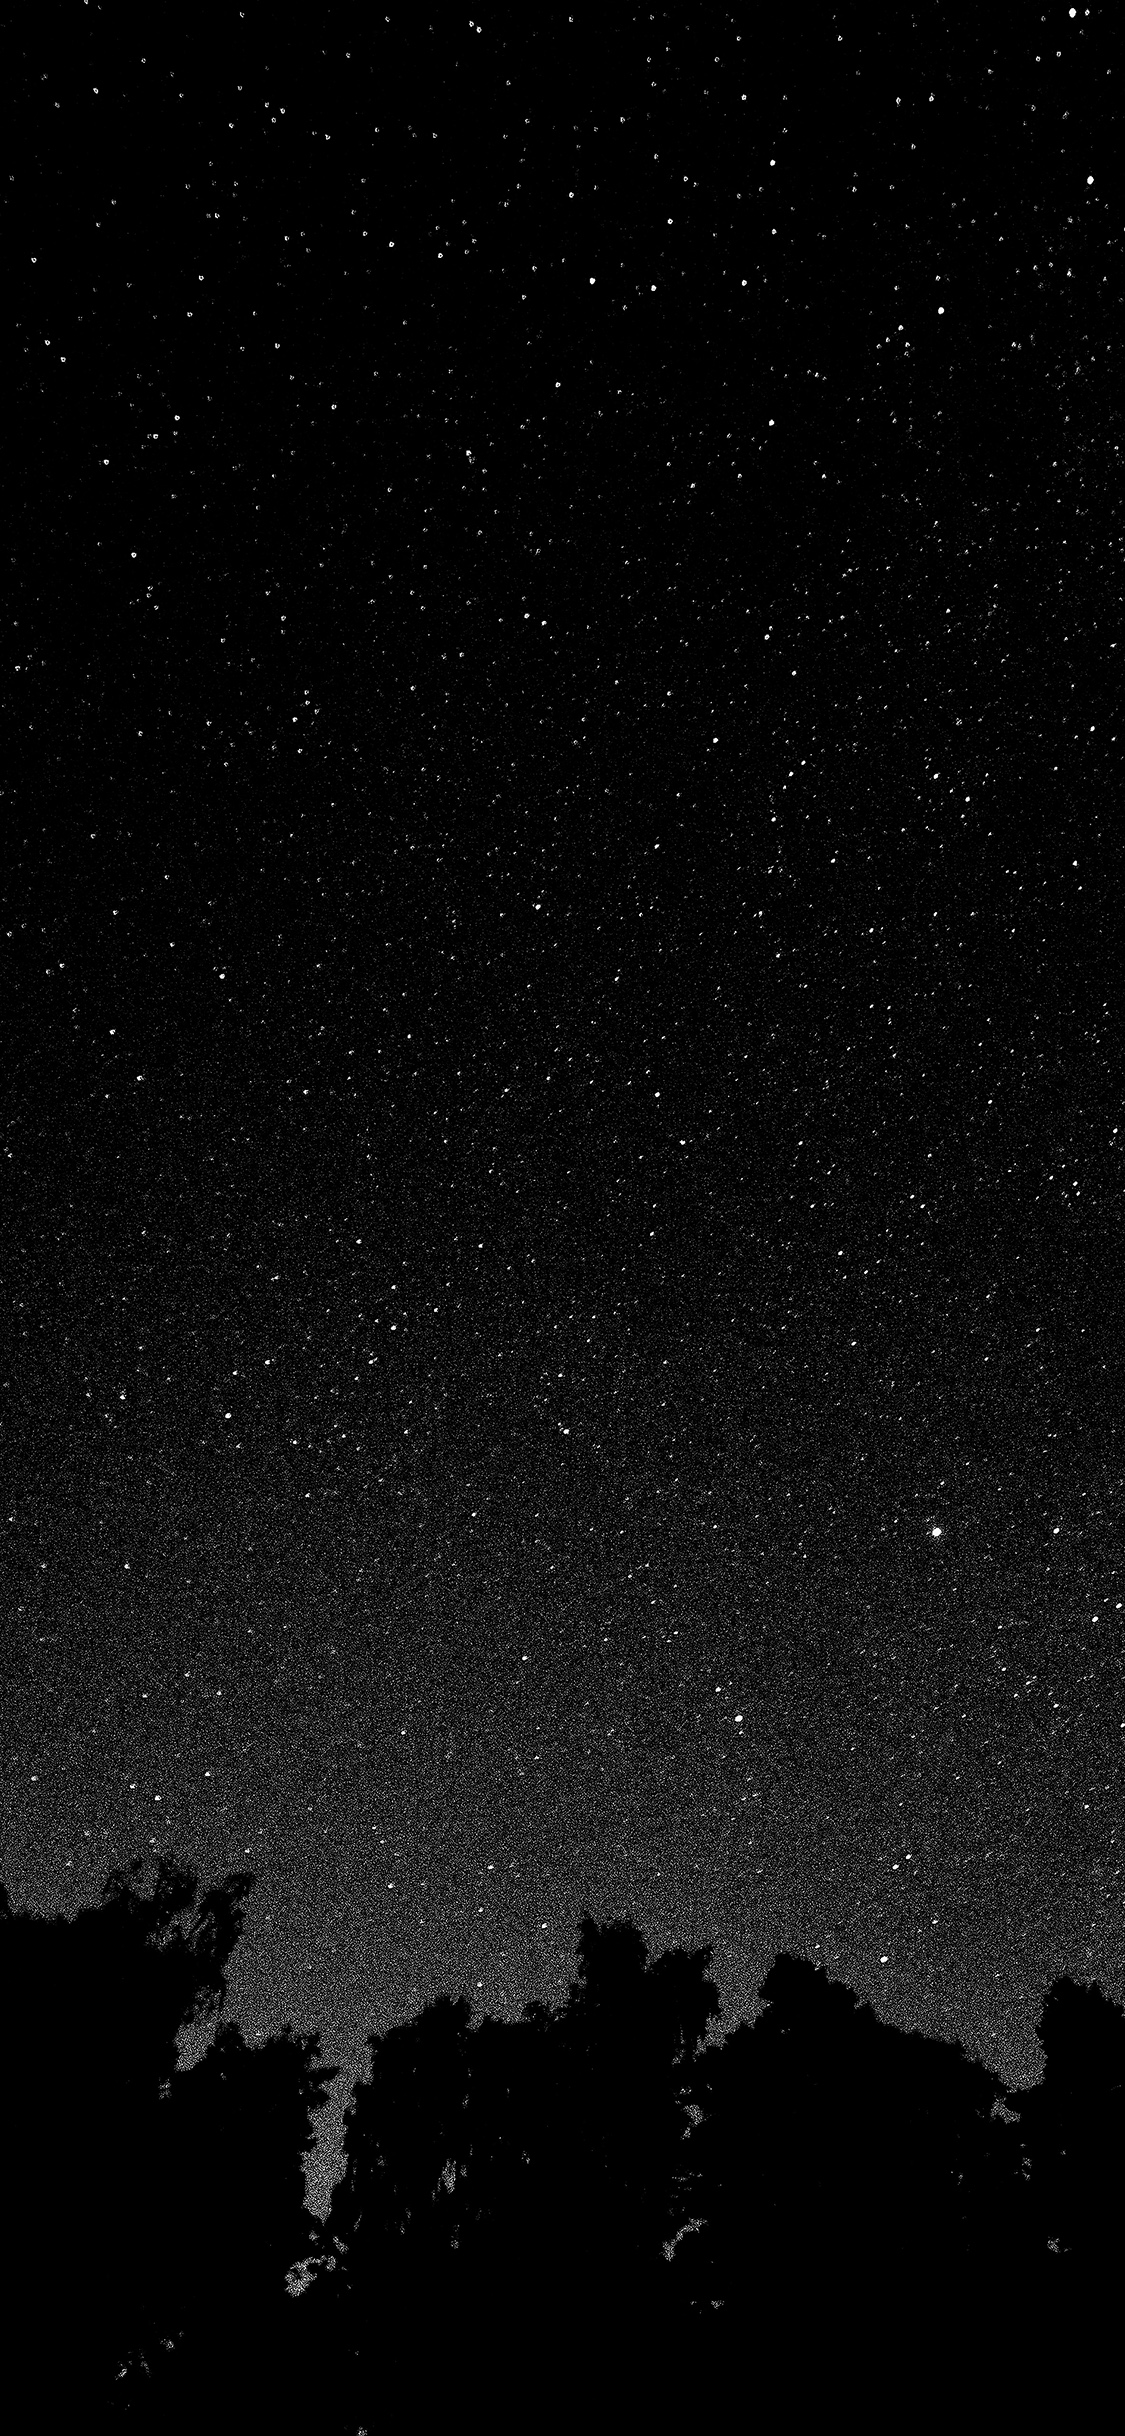 Most Inspiring Wallpaper Night Black And White - papers  Pic.jpg